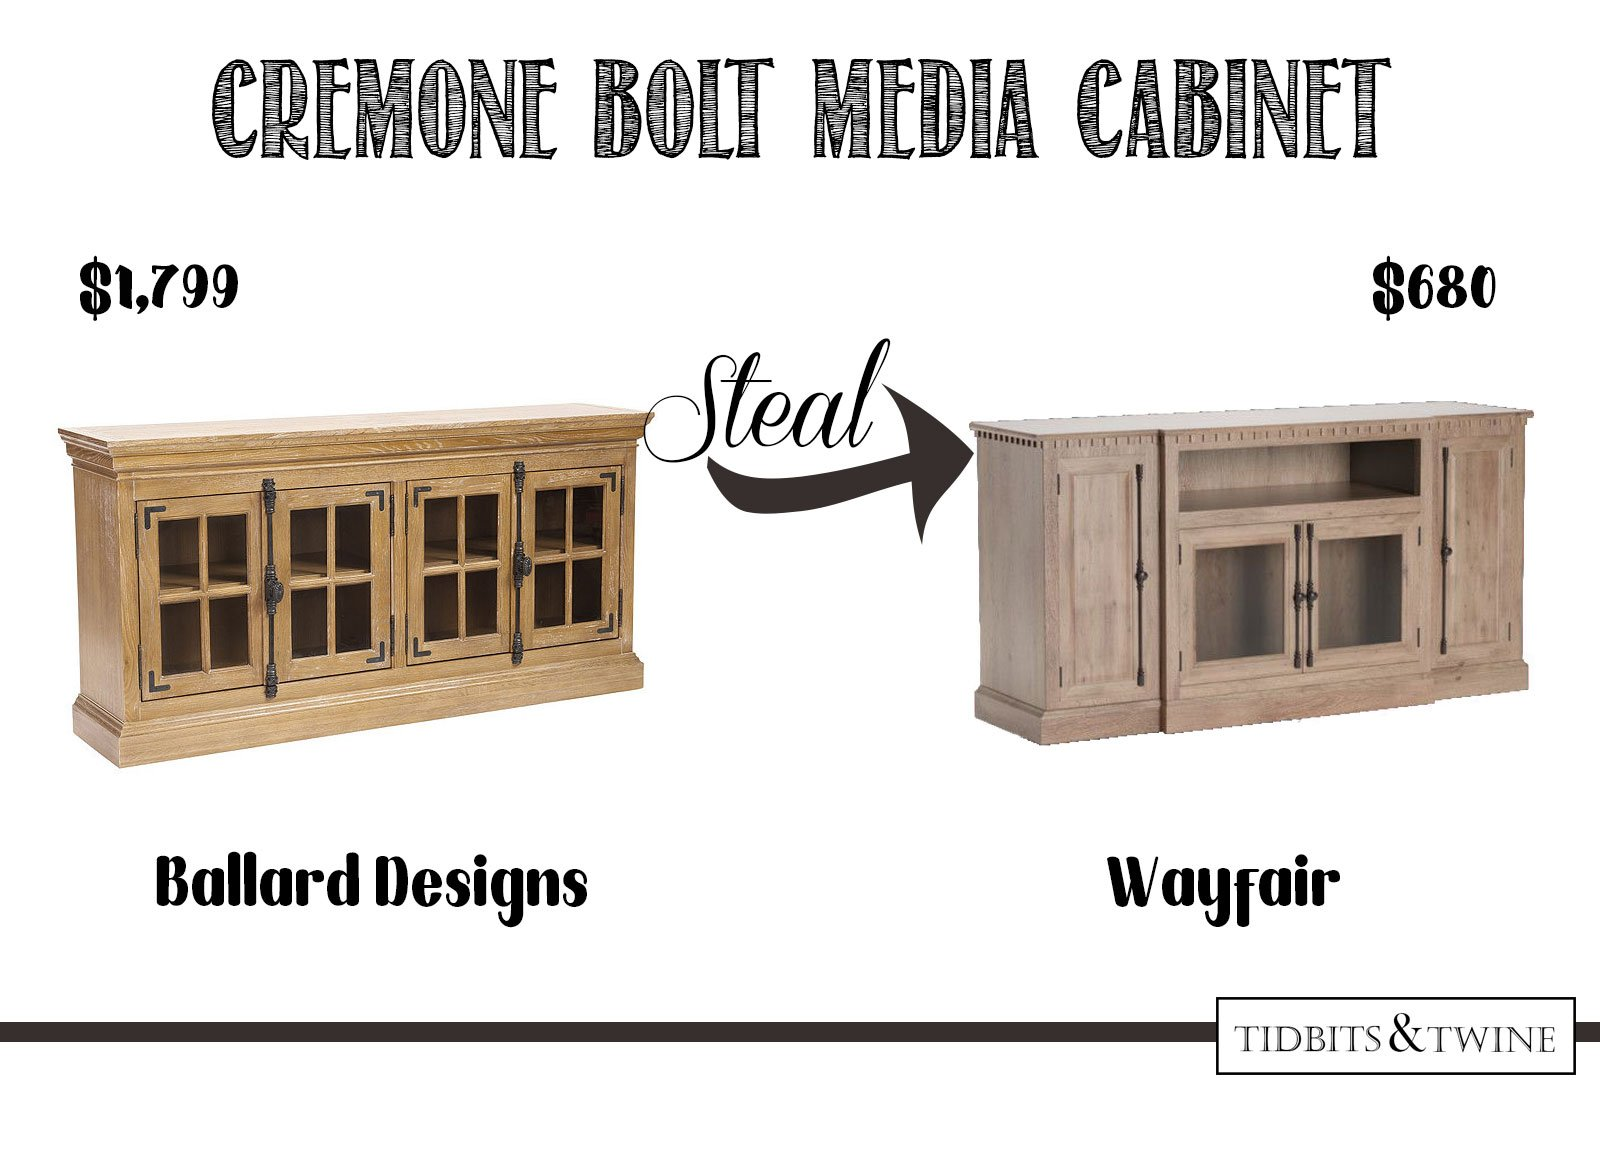 Get the look for less! Cremone bolt media cabinet